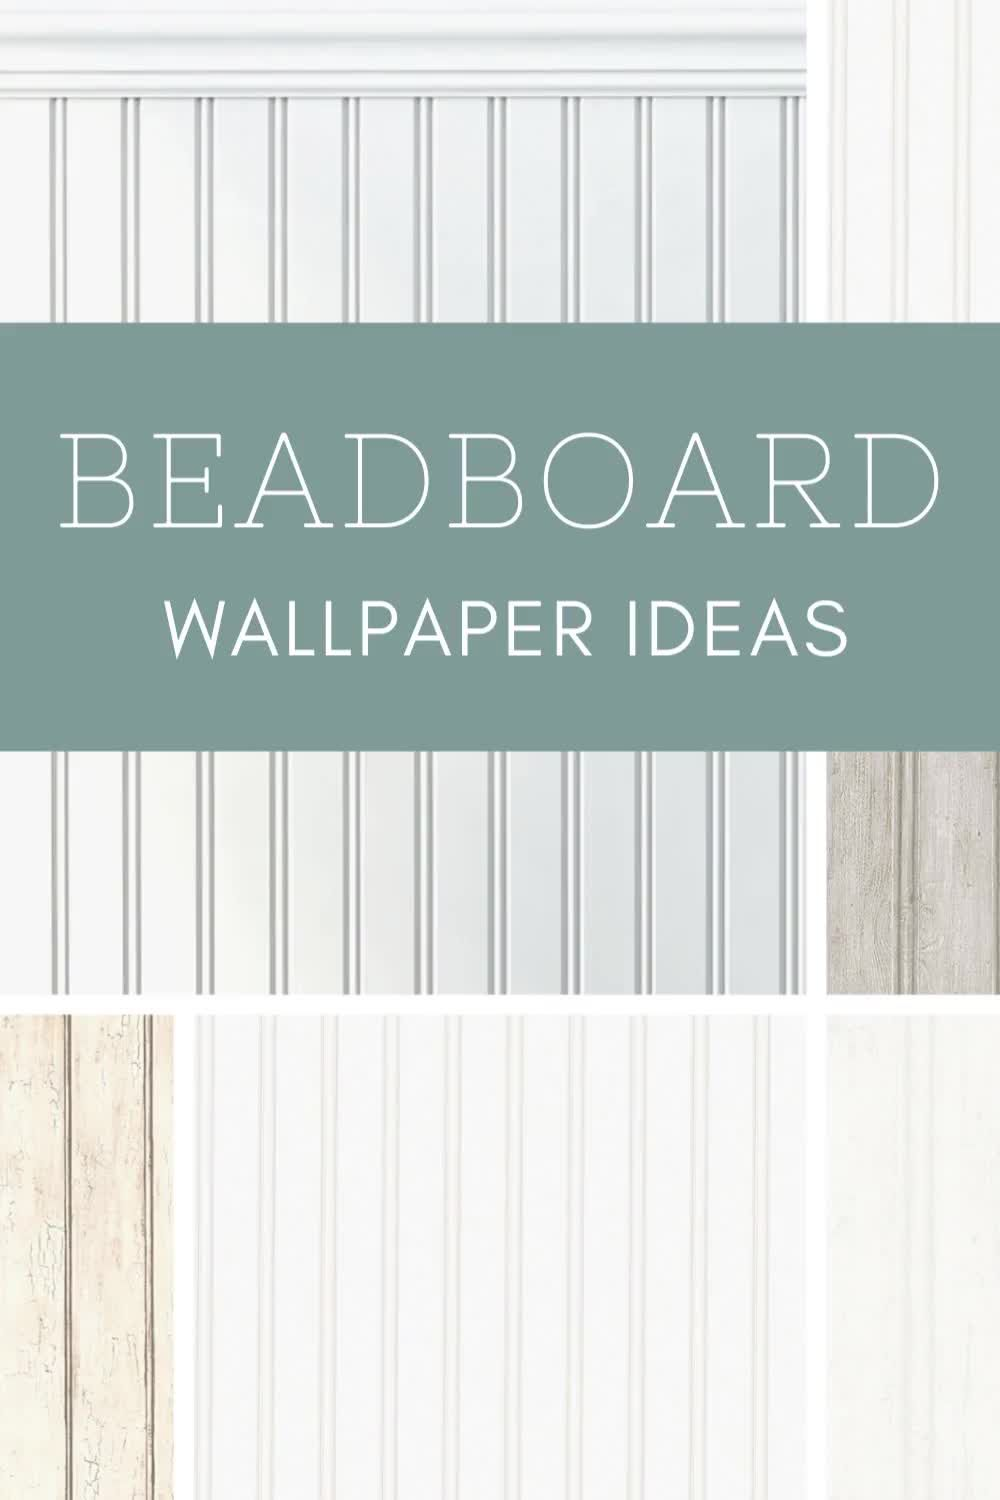 9 Cheap Easy Beadboard Wallpaper Recommendations Video Video Beadboard Wallpaper Beadboard Wallpaper Ceiling